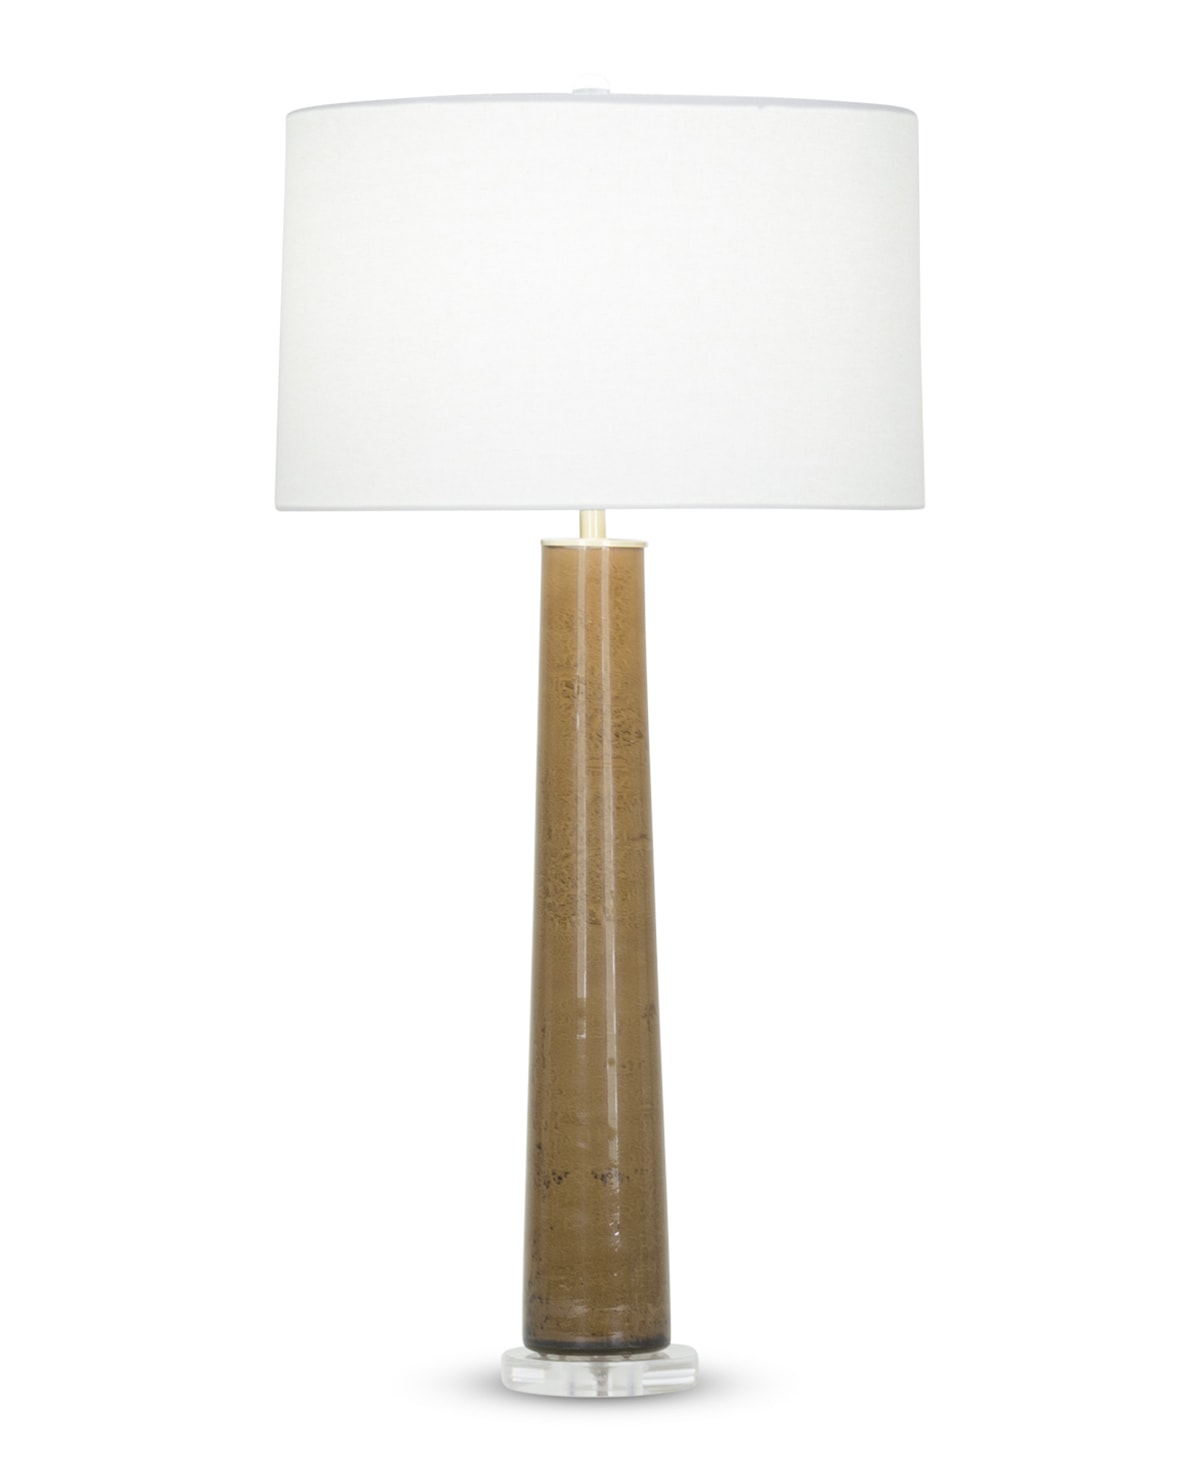 FlowDecor Penelope Table Lamp in mouth-blown glass with brown finish and acrylic base and off-white linen tapered drum shade (# 3951)